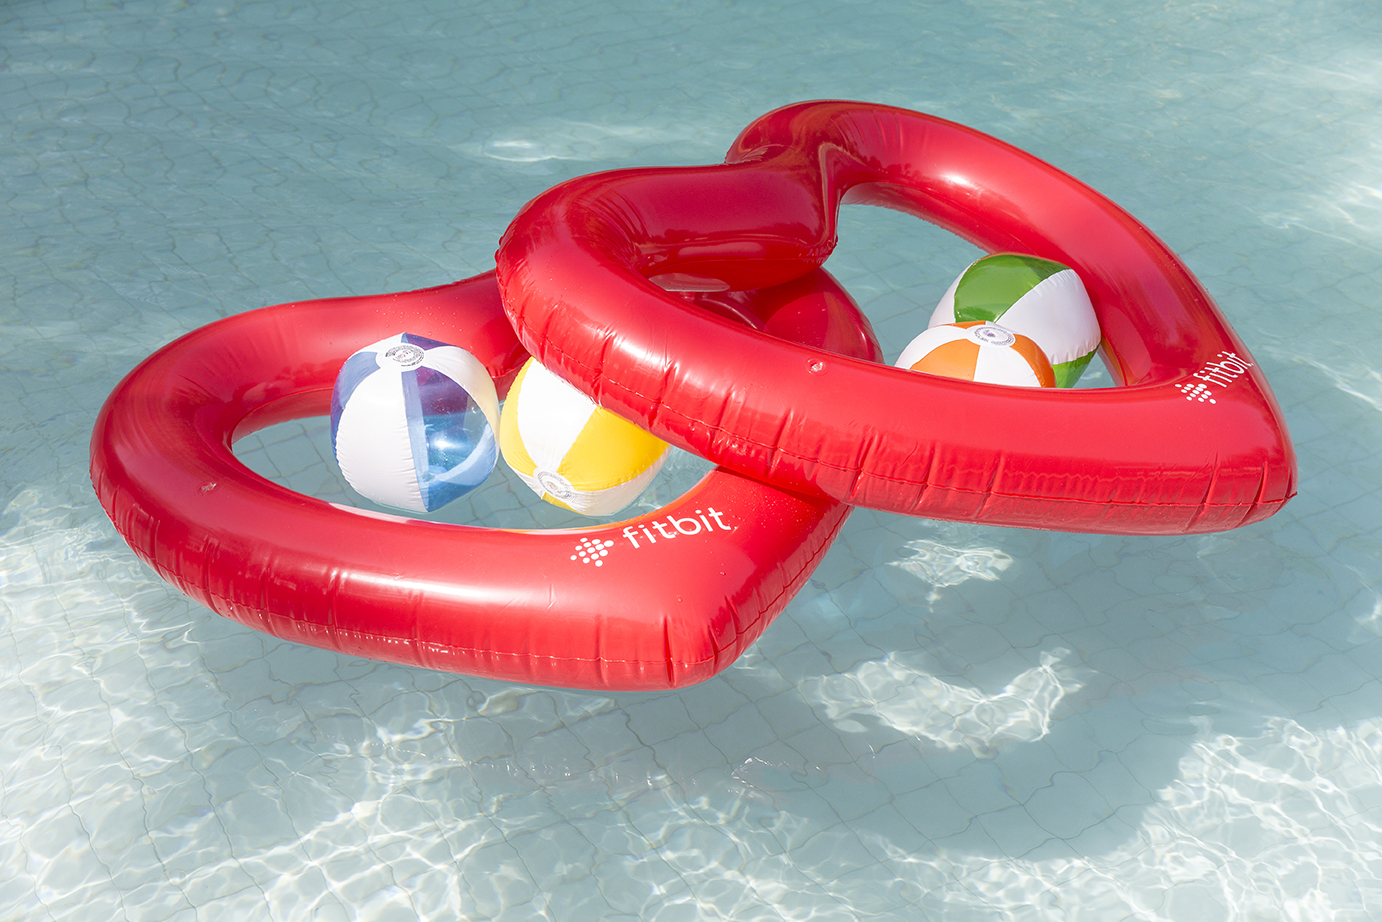 Fitbit heart inflatables